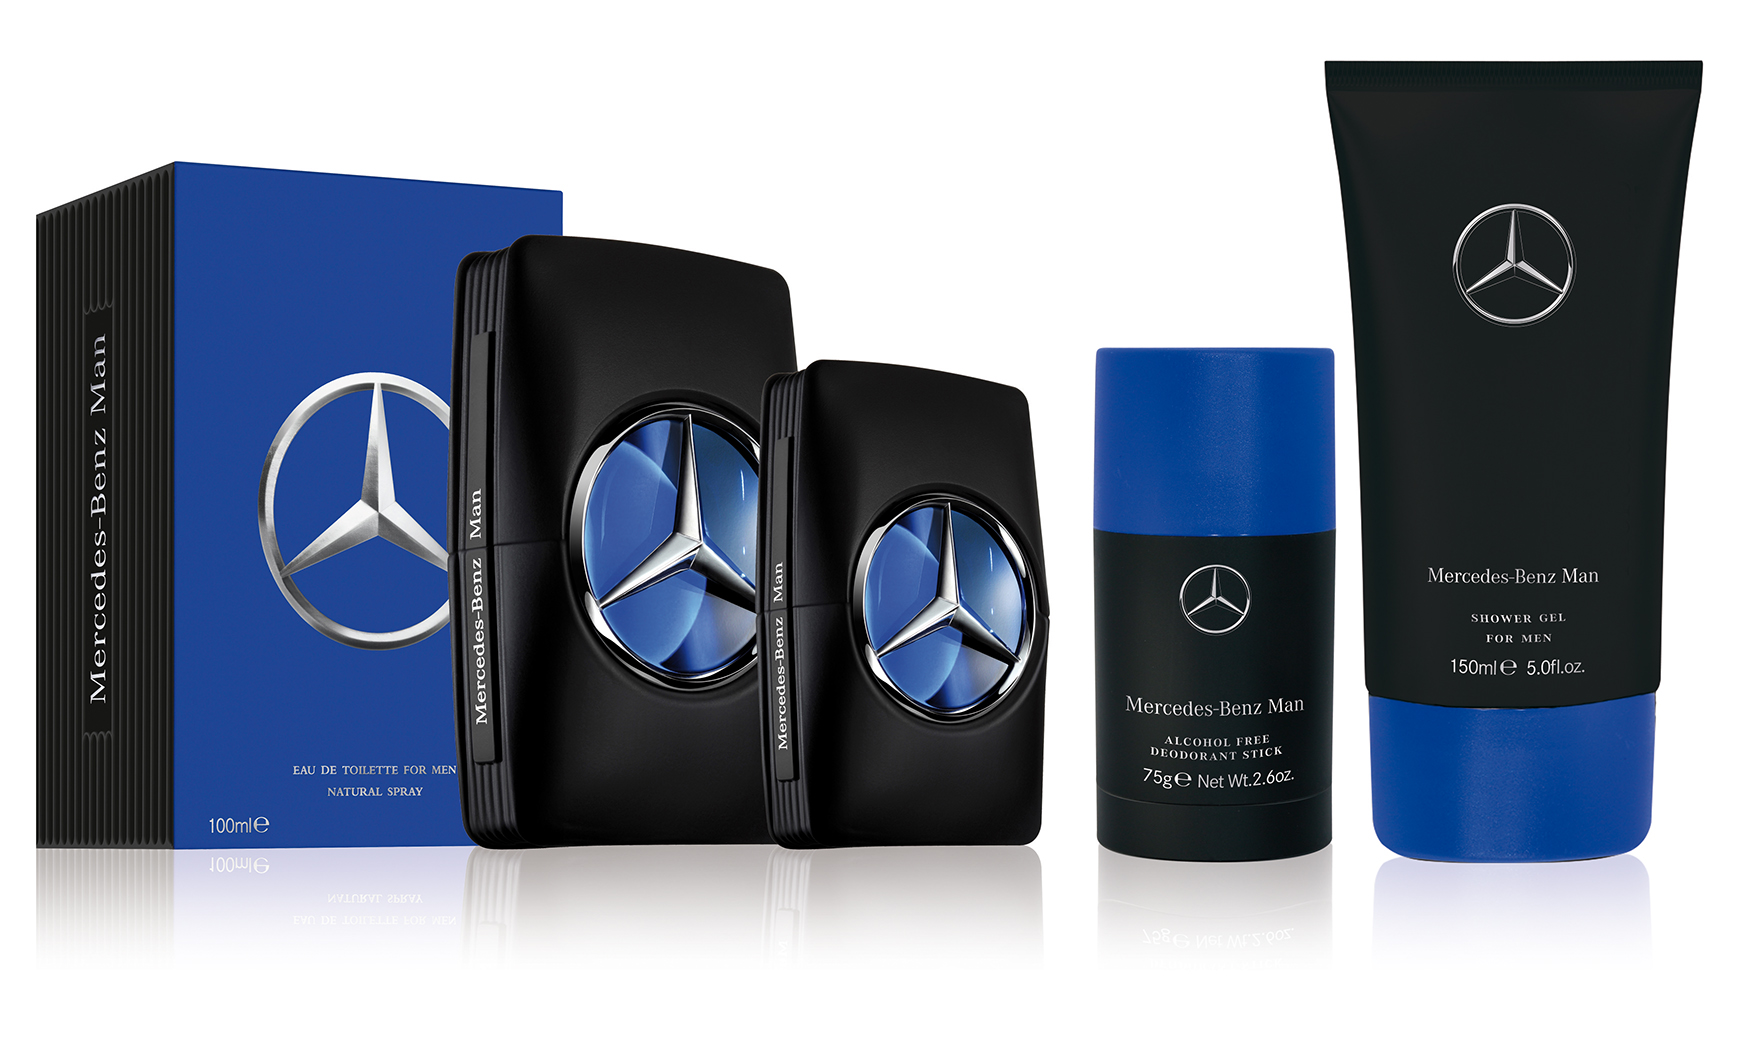 mercedes benz man mercedes benz cologne ein neues parfum. Black Bedroom Furniture Sets. Home Design Ideas